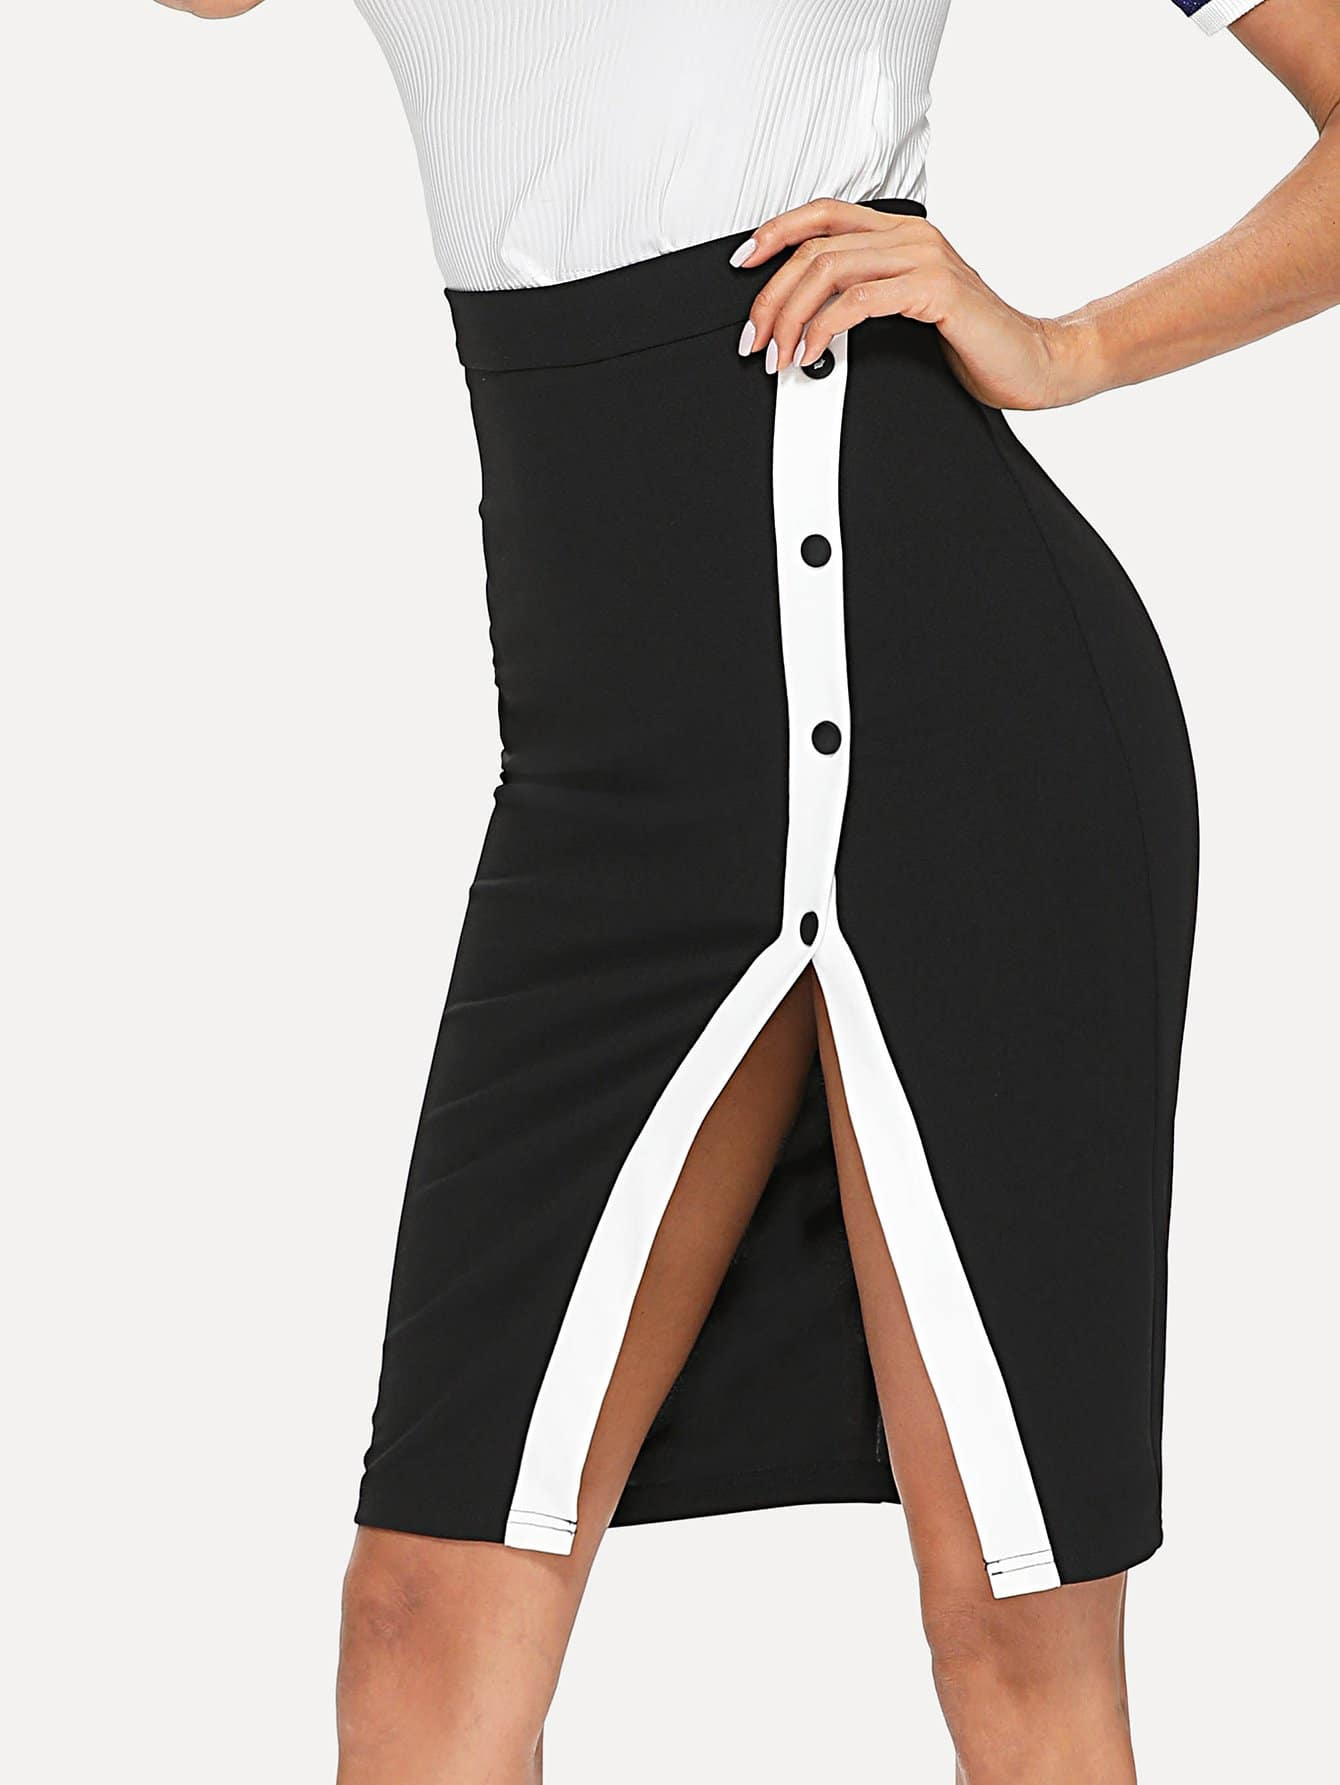 Buttoned Contrast Panel Split Pencil Skirt slit back contrast feather pencil skirt